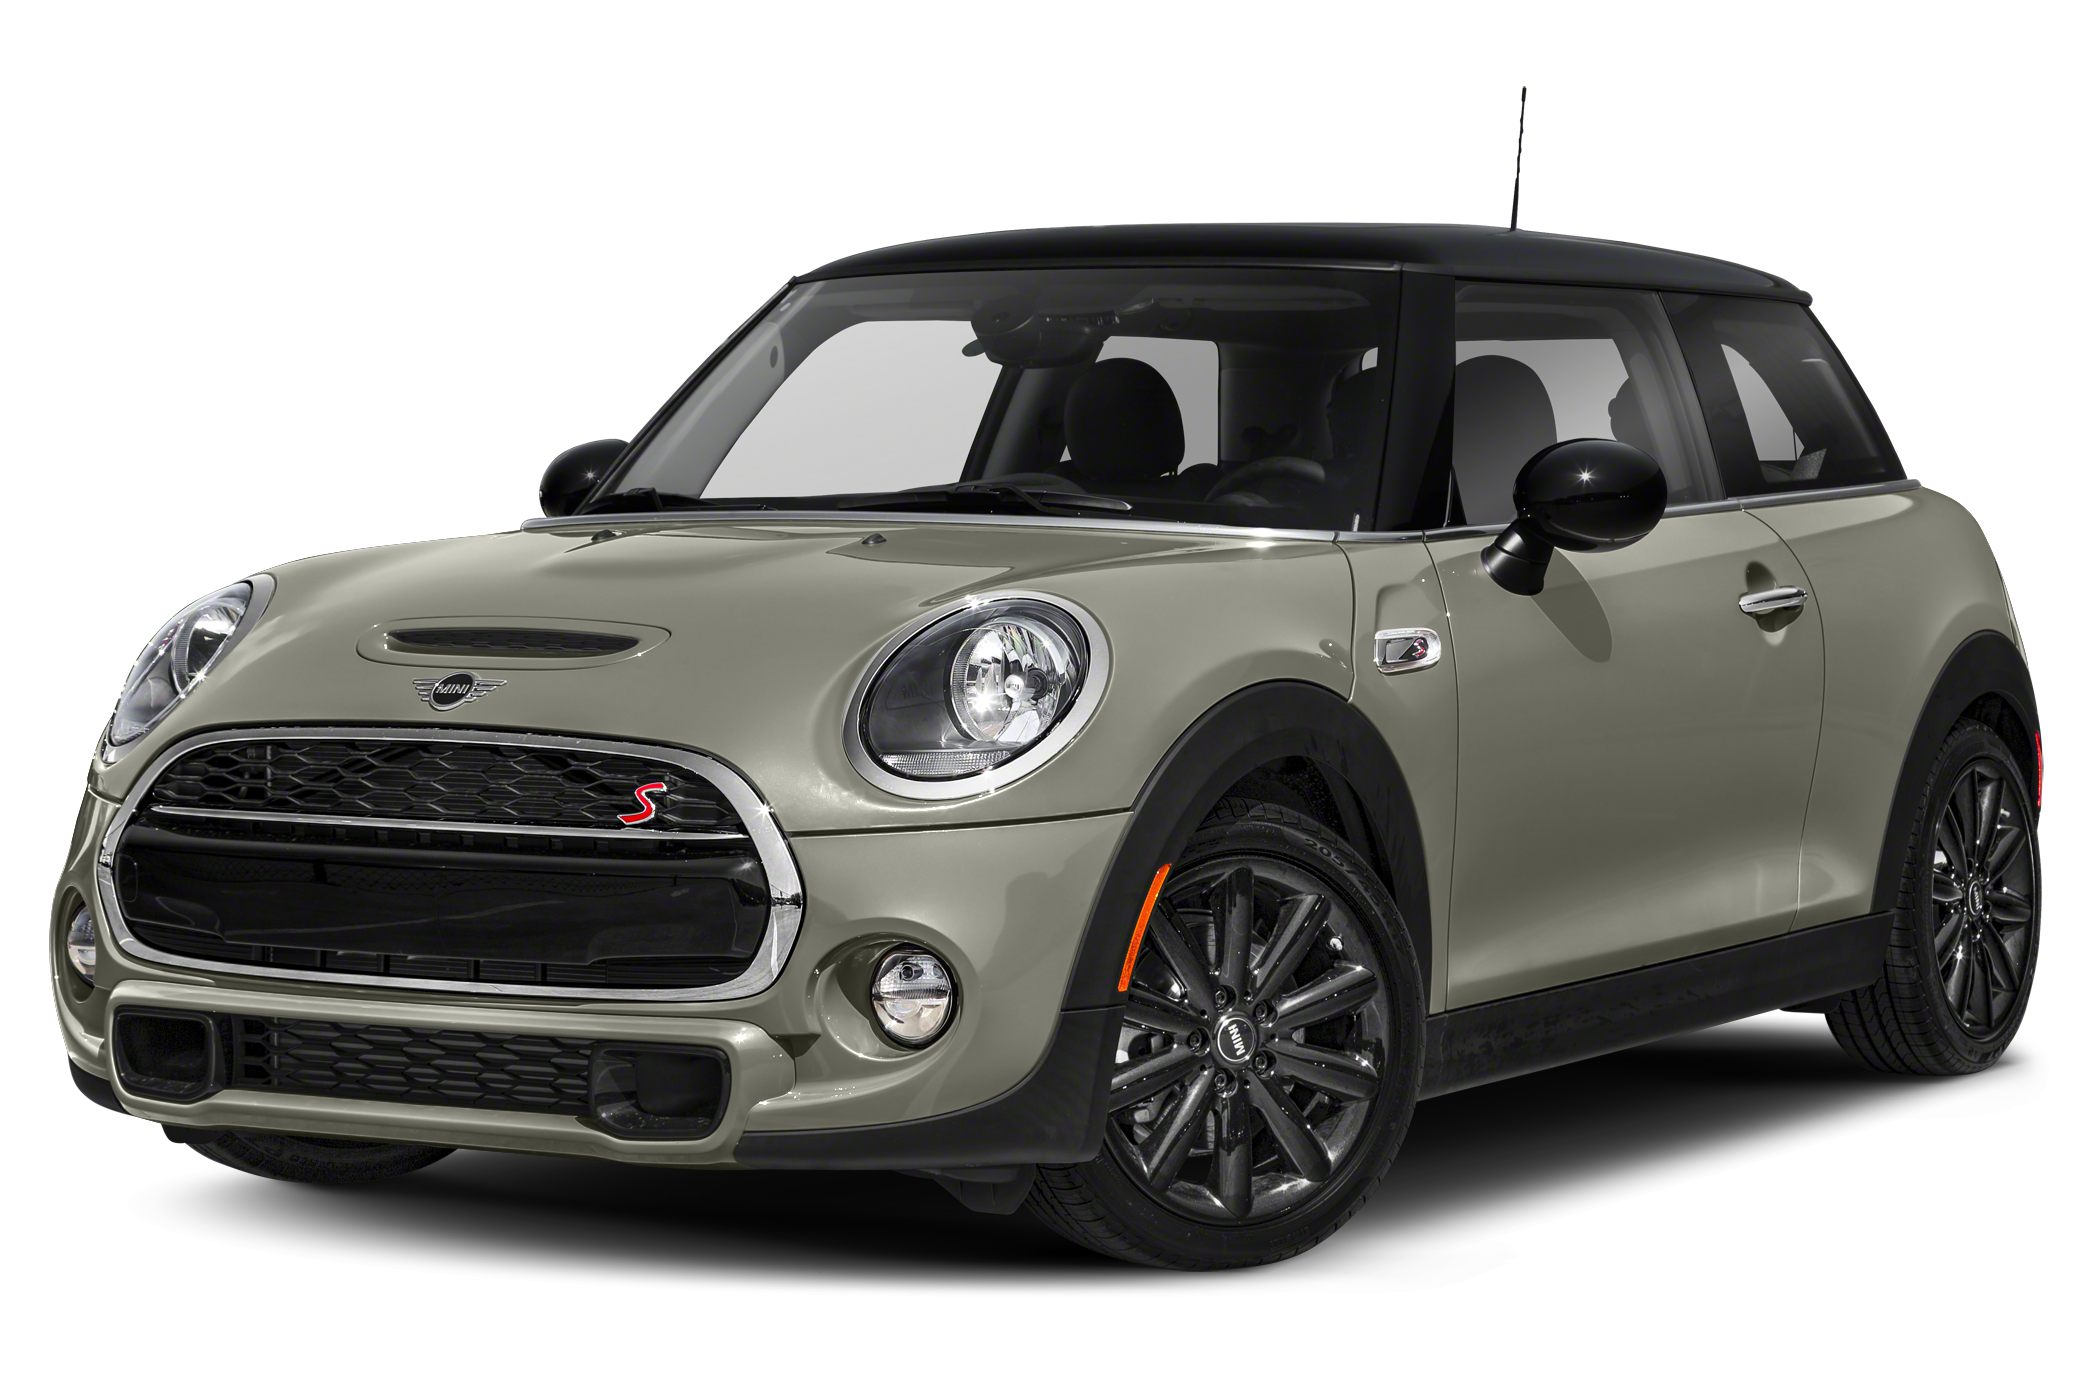 2014 Mini Cooper Hardtop officially revealed